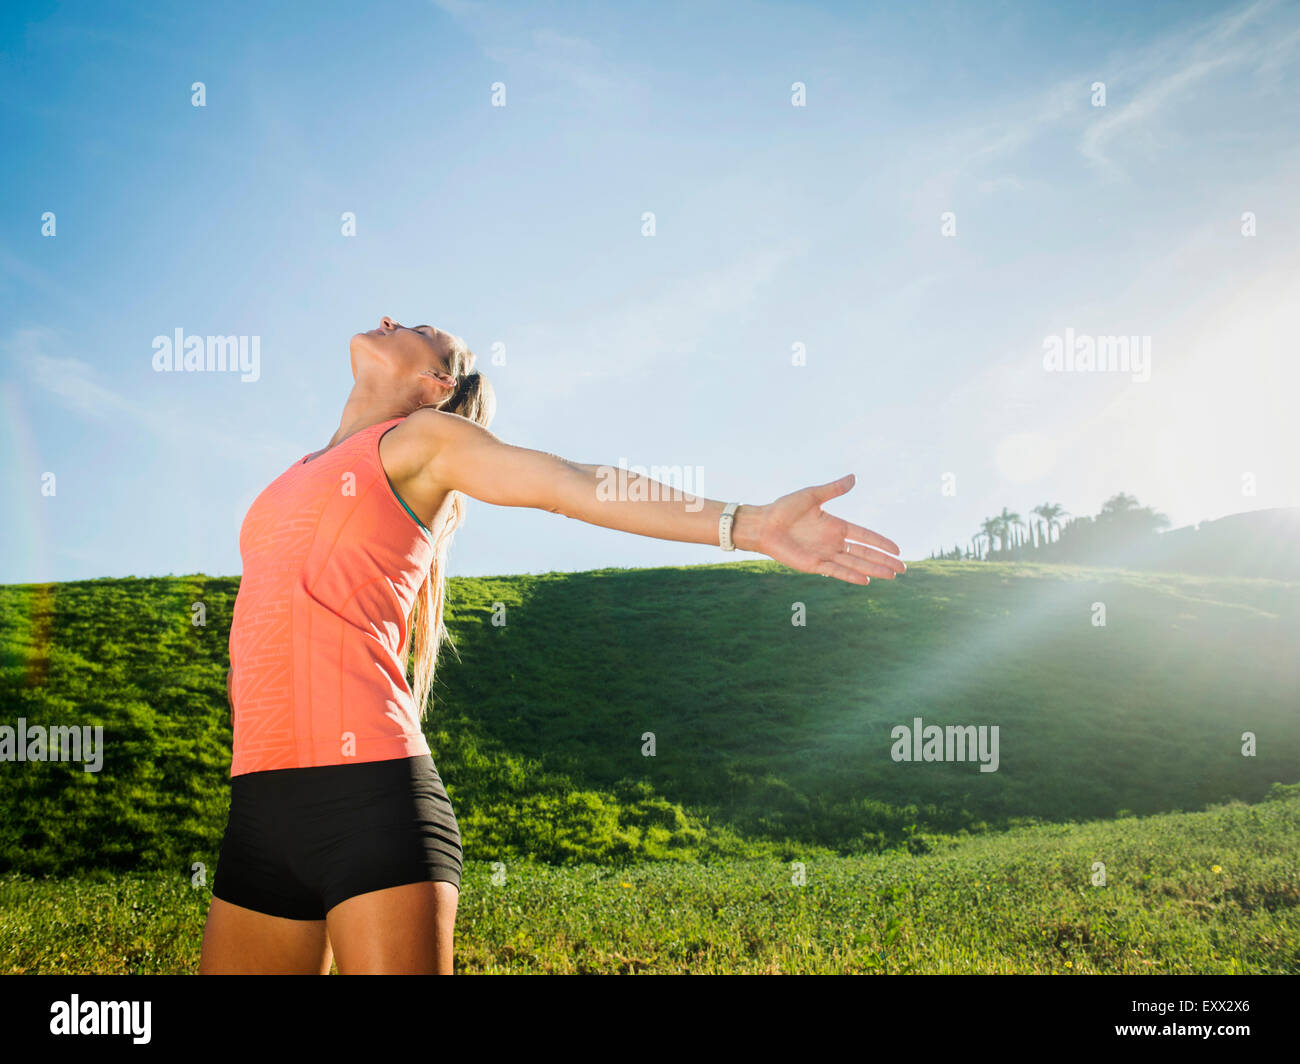 Woman with outstretched arms in field - Stock Image